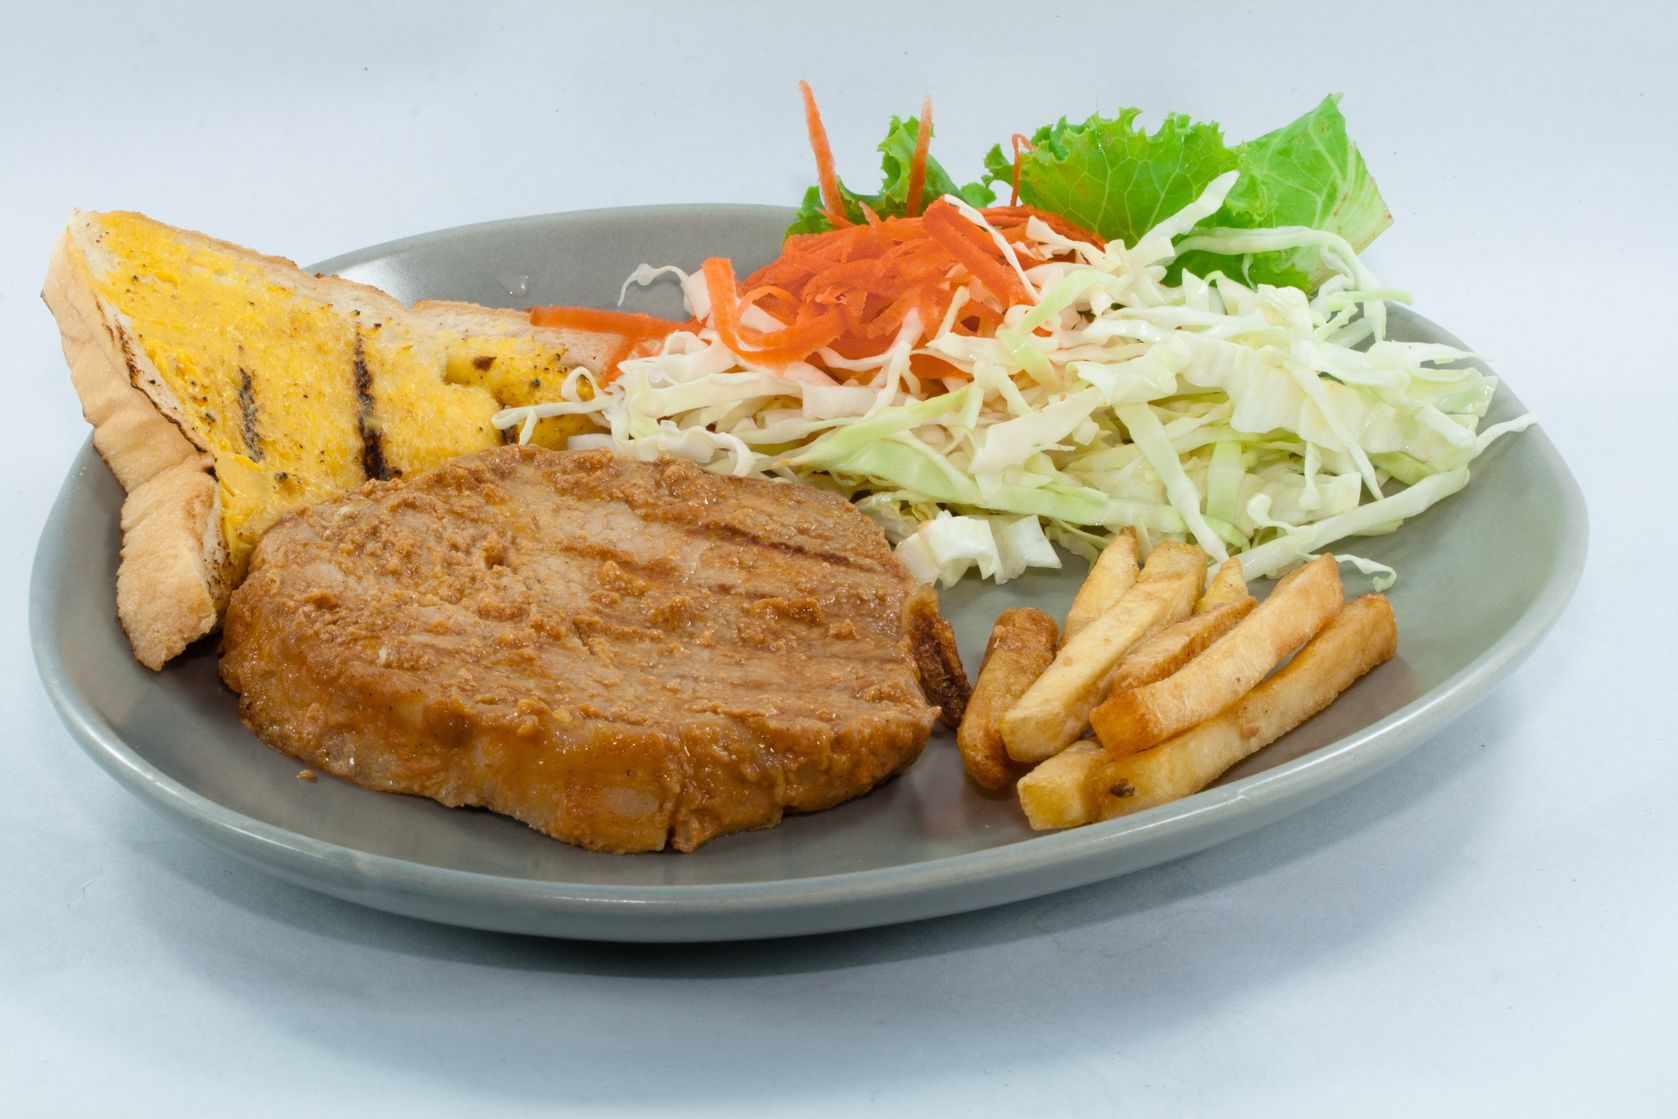 14006368 – porksteak with salad and butter bread